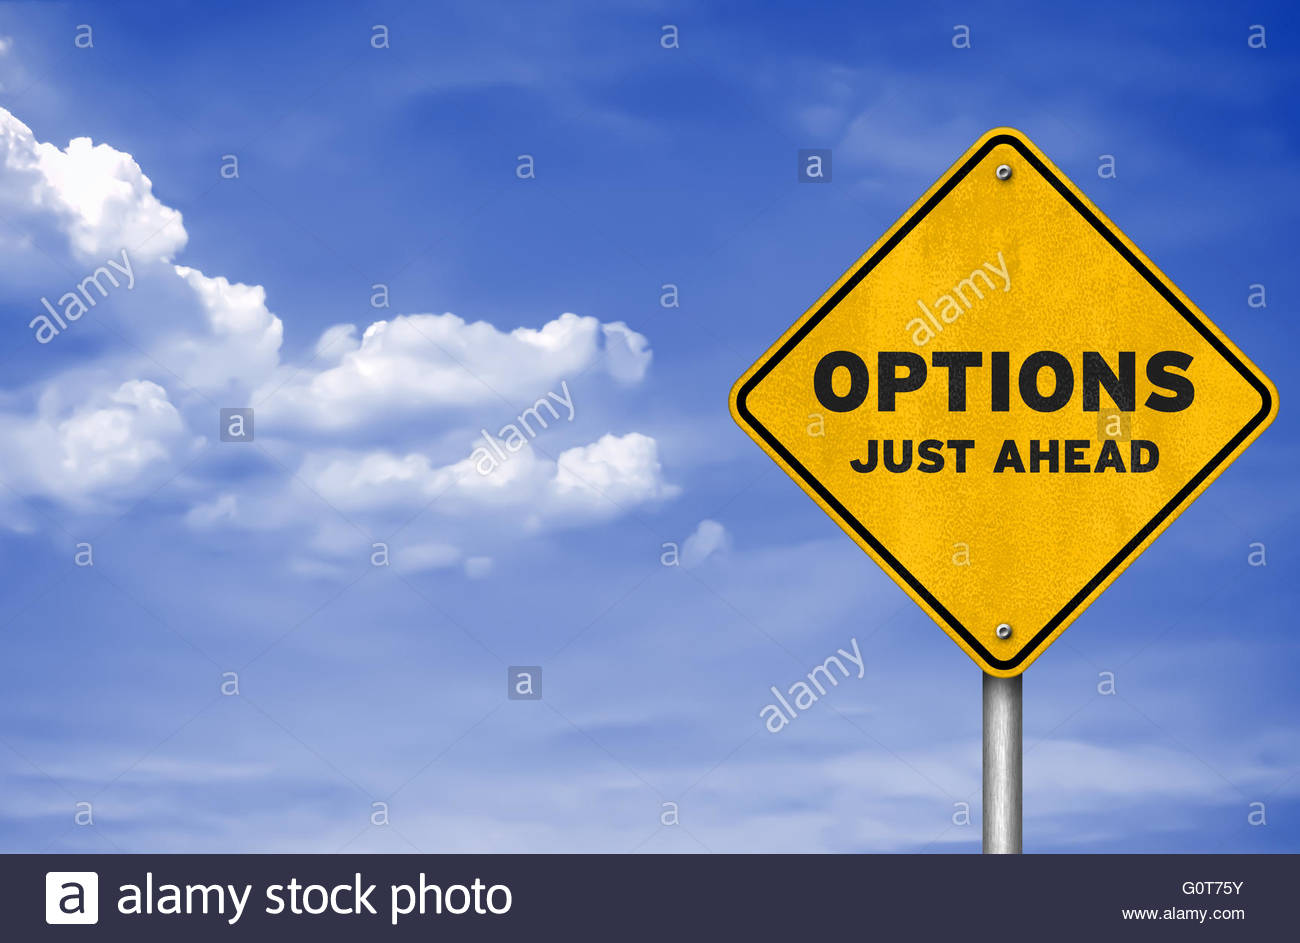 Options just ahead - road sign concept - Stock Image